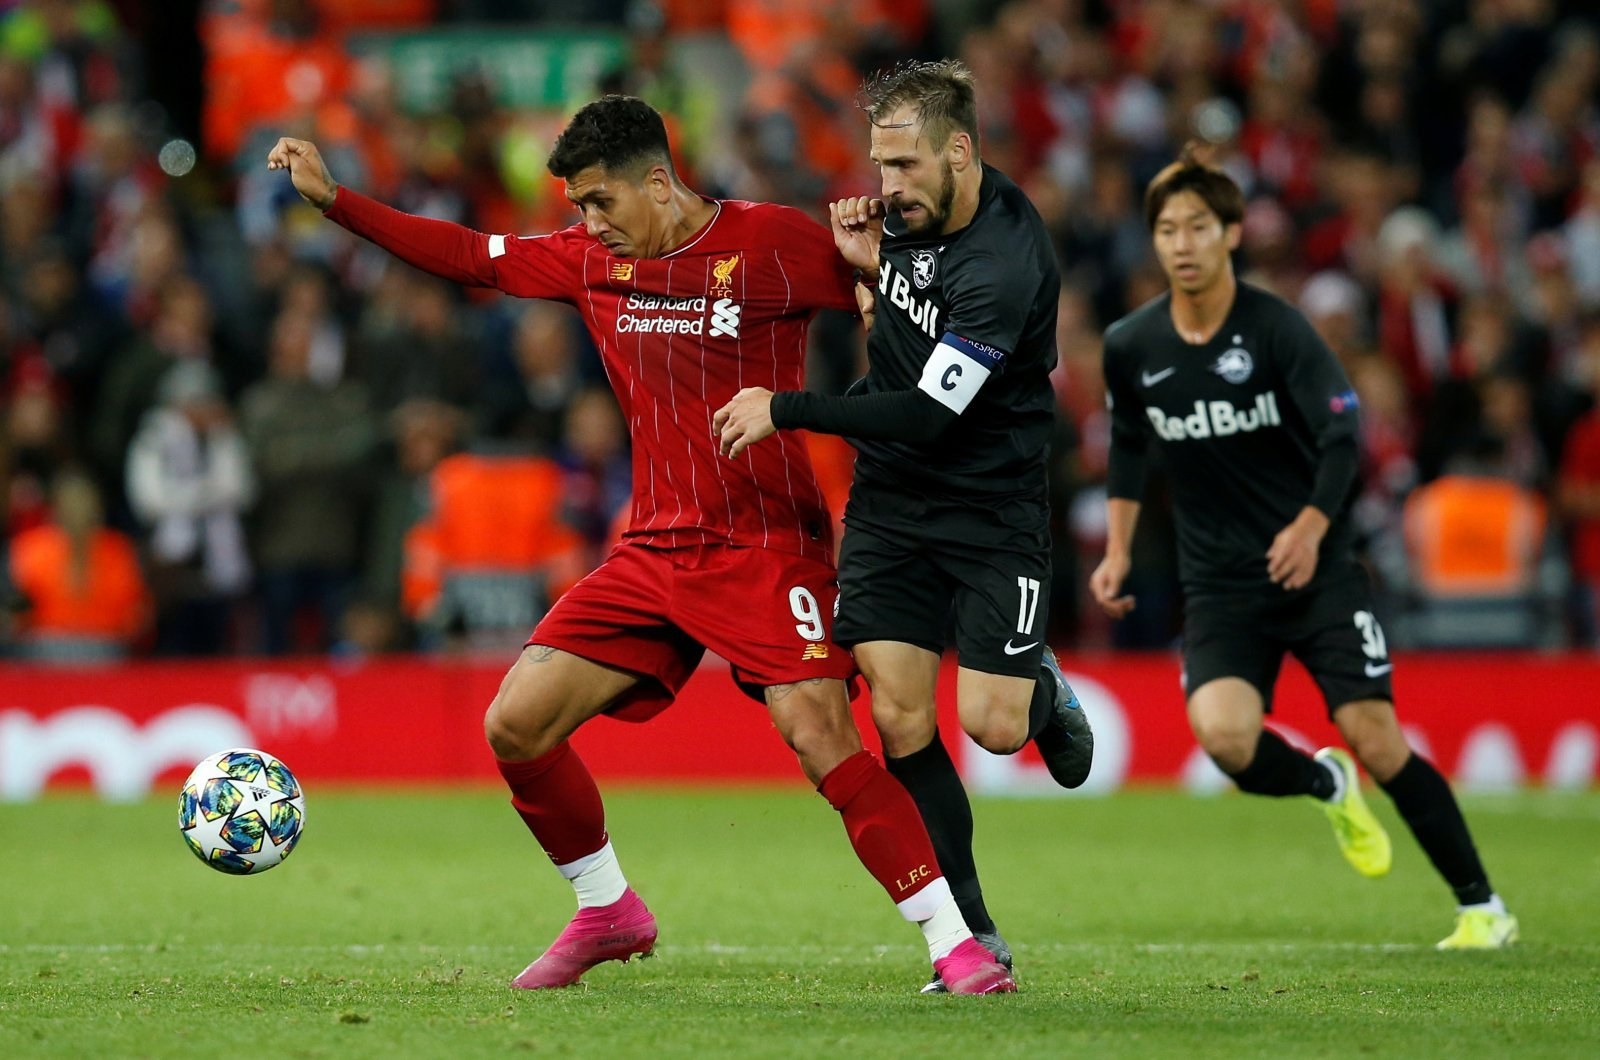 Liverpool: Many fans were calling for Roberto Firmino to be substituted long before 88th minute